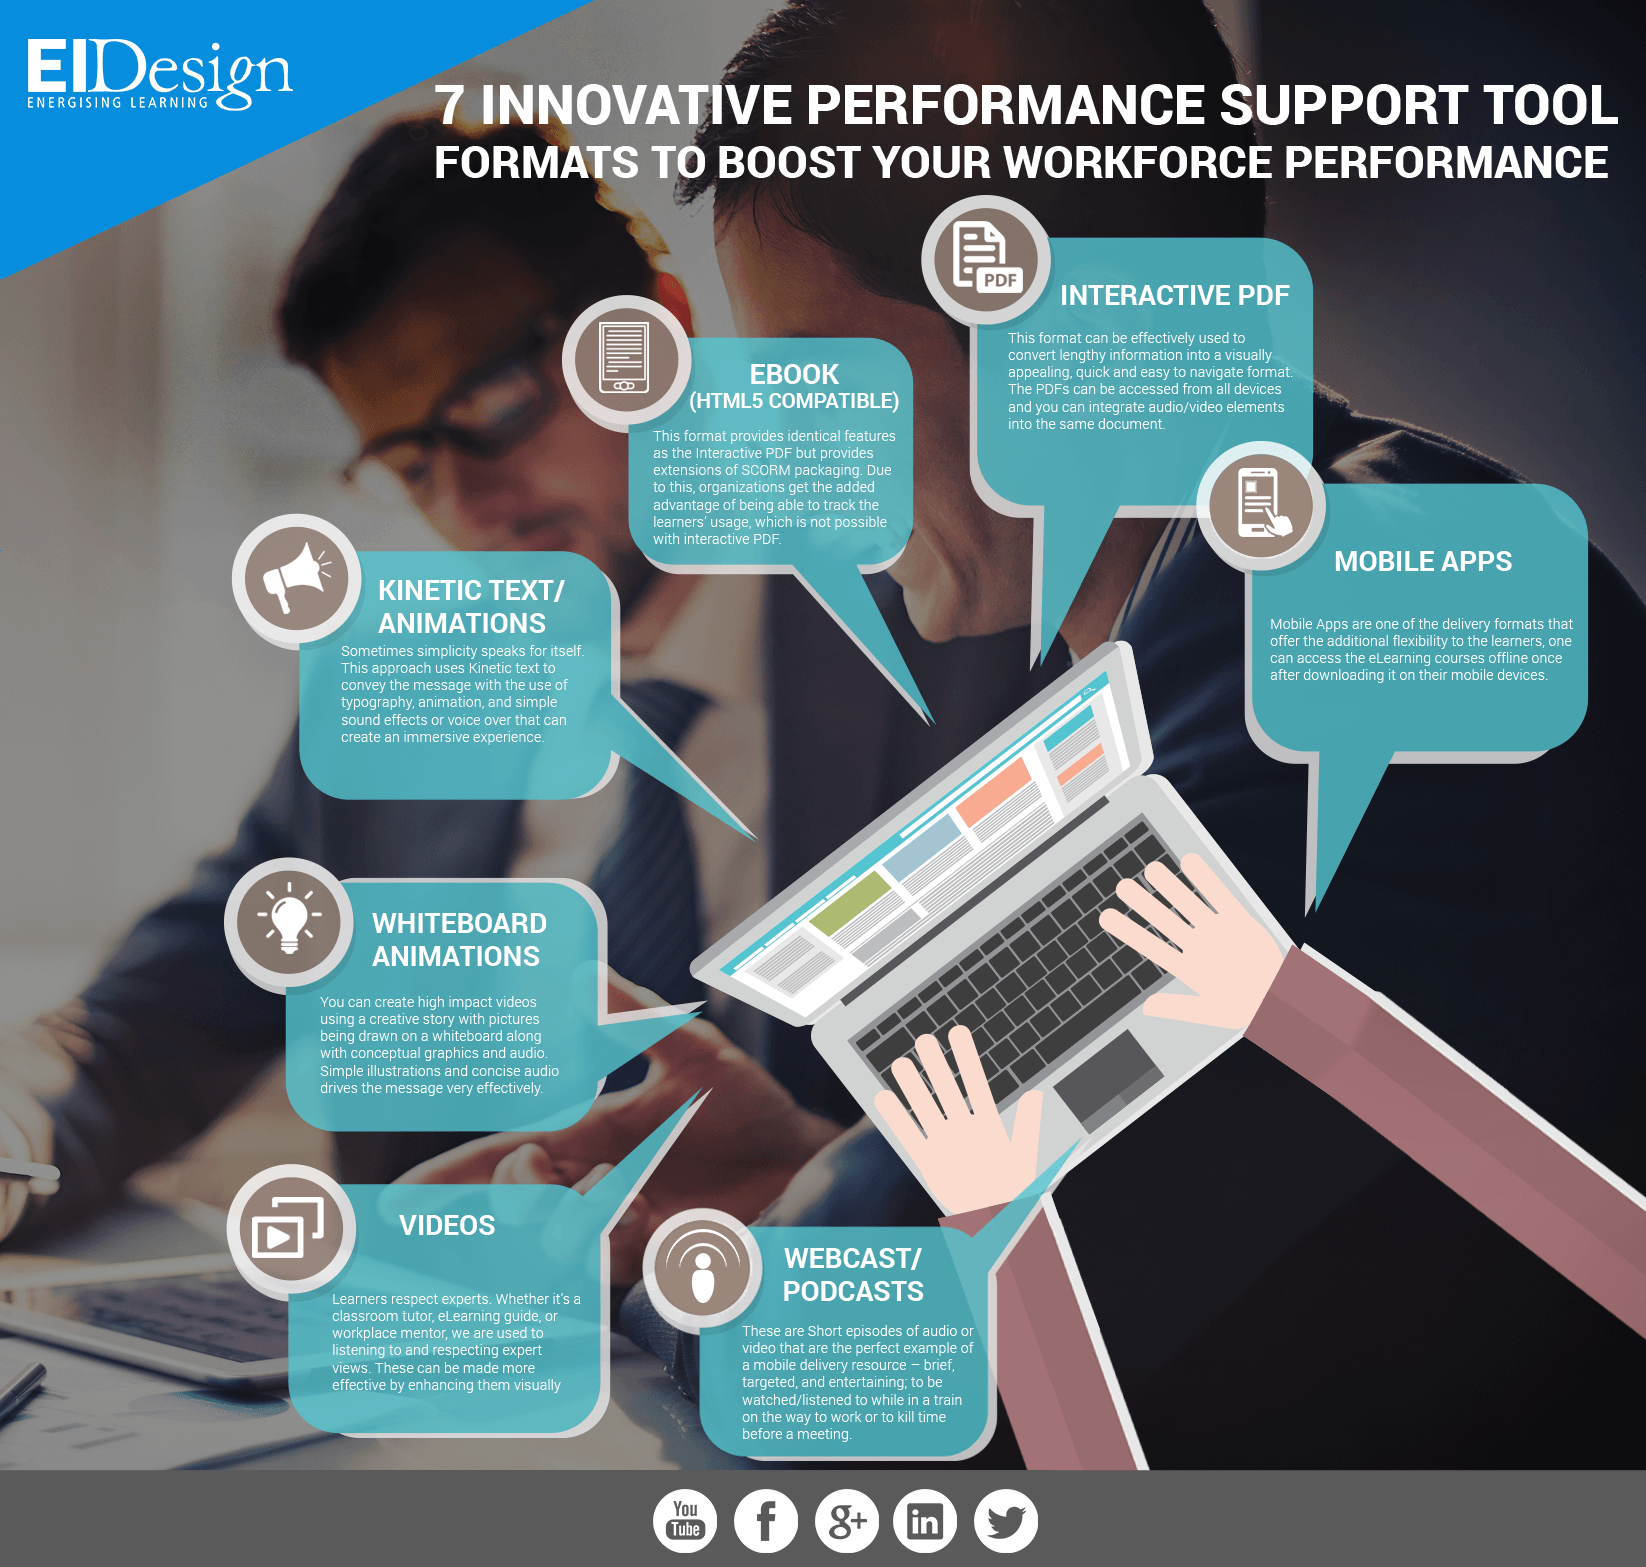 7 performance support tool formats to boost your workforce